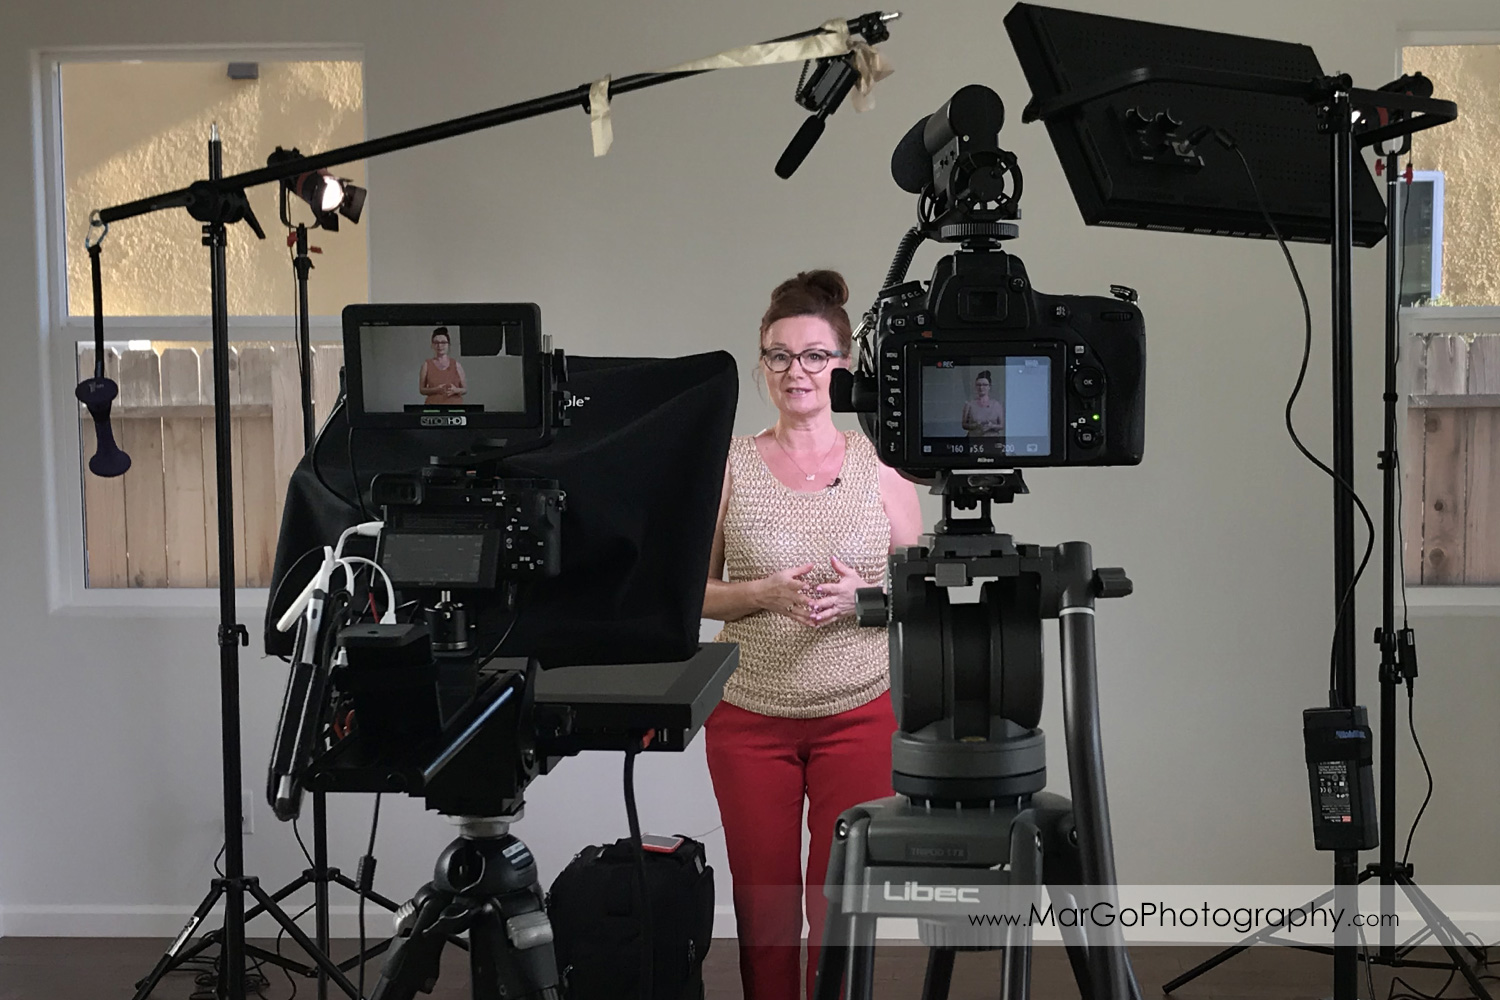 behind the scenes of indoor filming woman speaker in golden top and red pants seen through two cameras and teleprompter setup